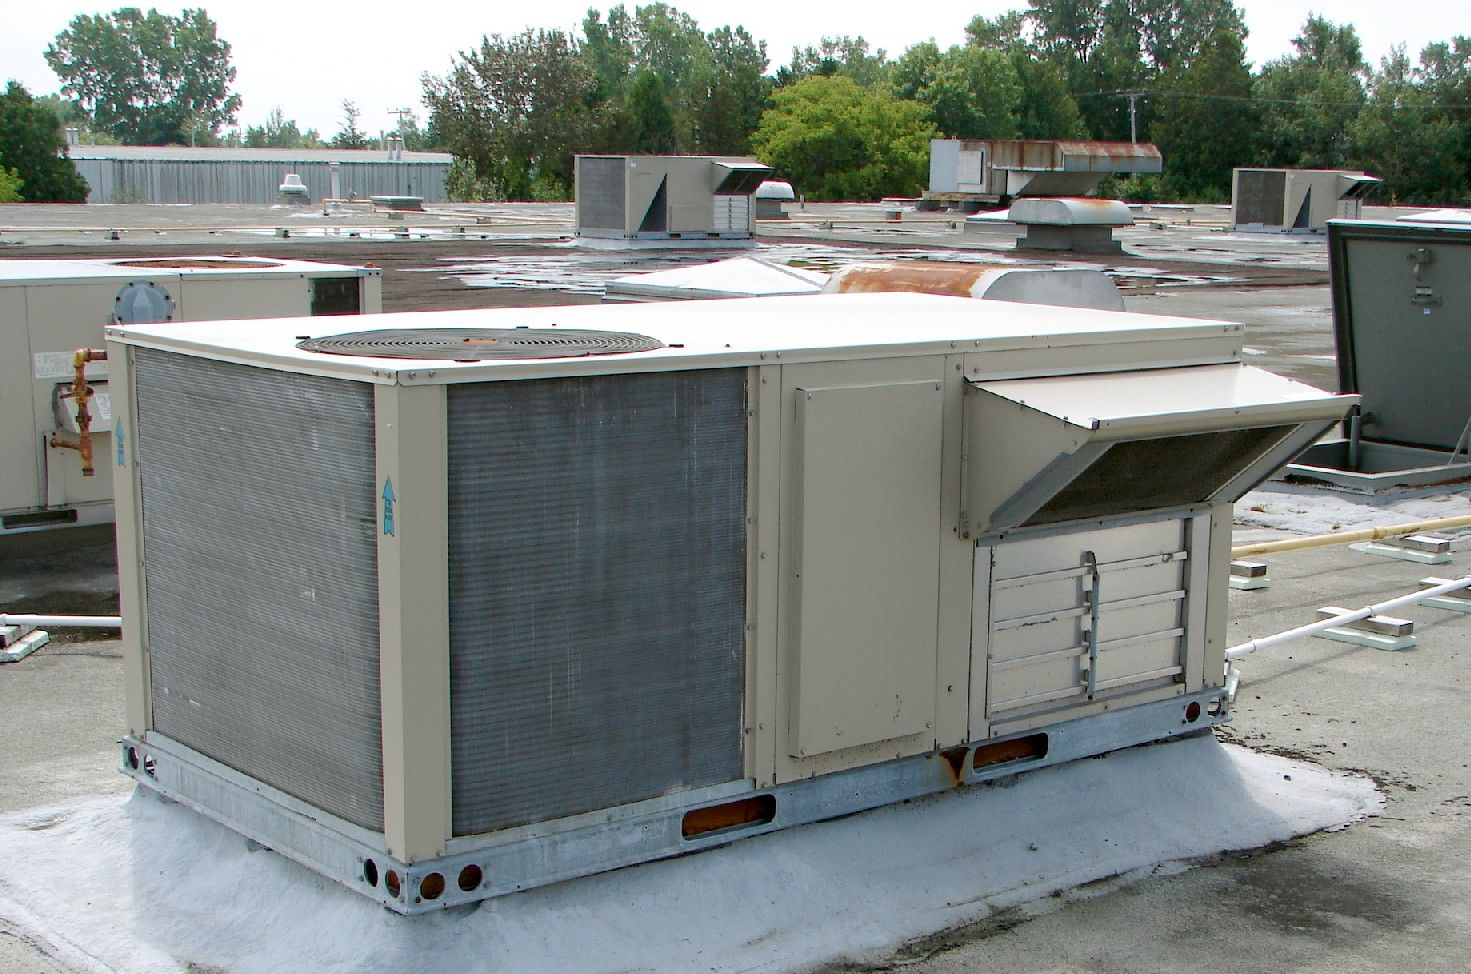 Exceptional DP Air Will Keep Your HVAC In Top Working Condition With Preventative  Maintenance And 24/